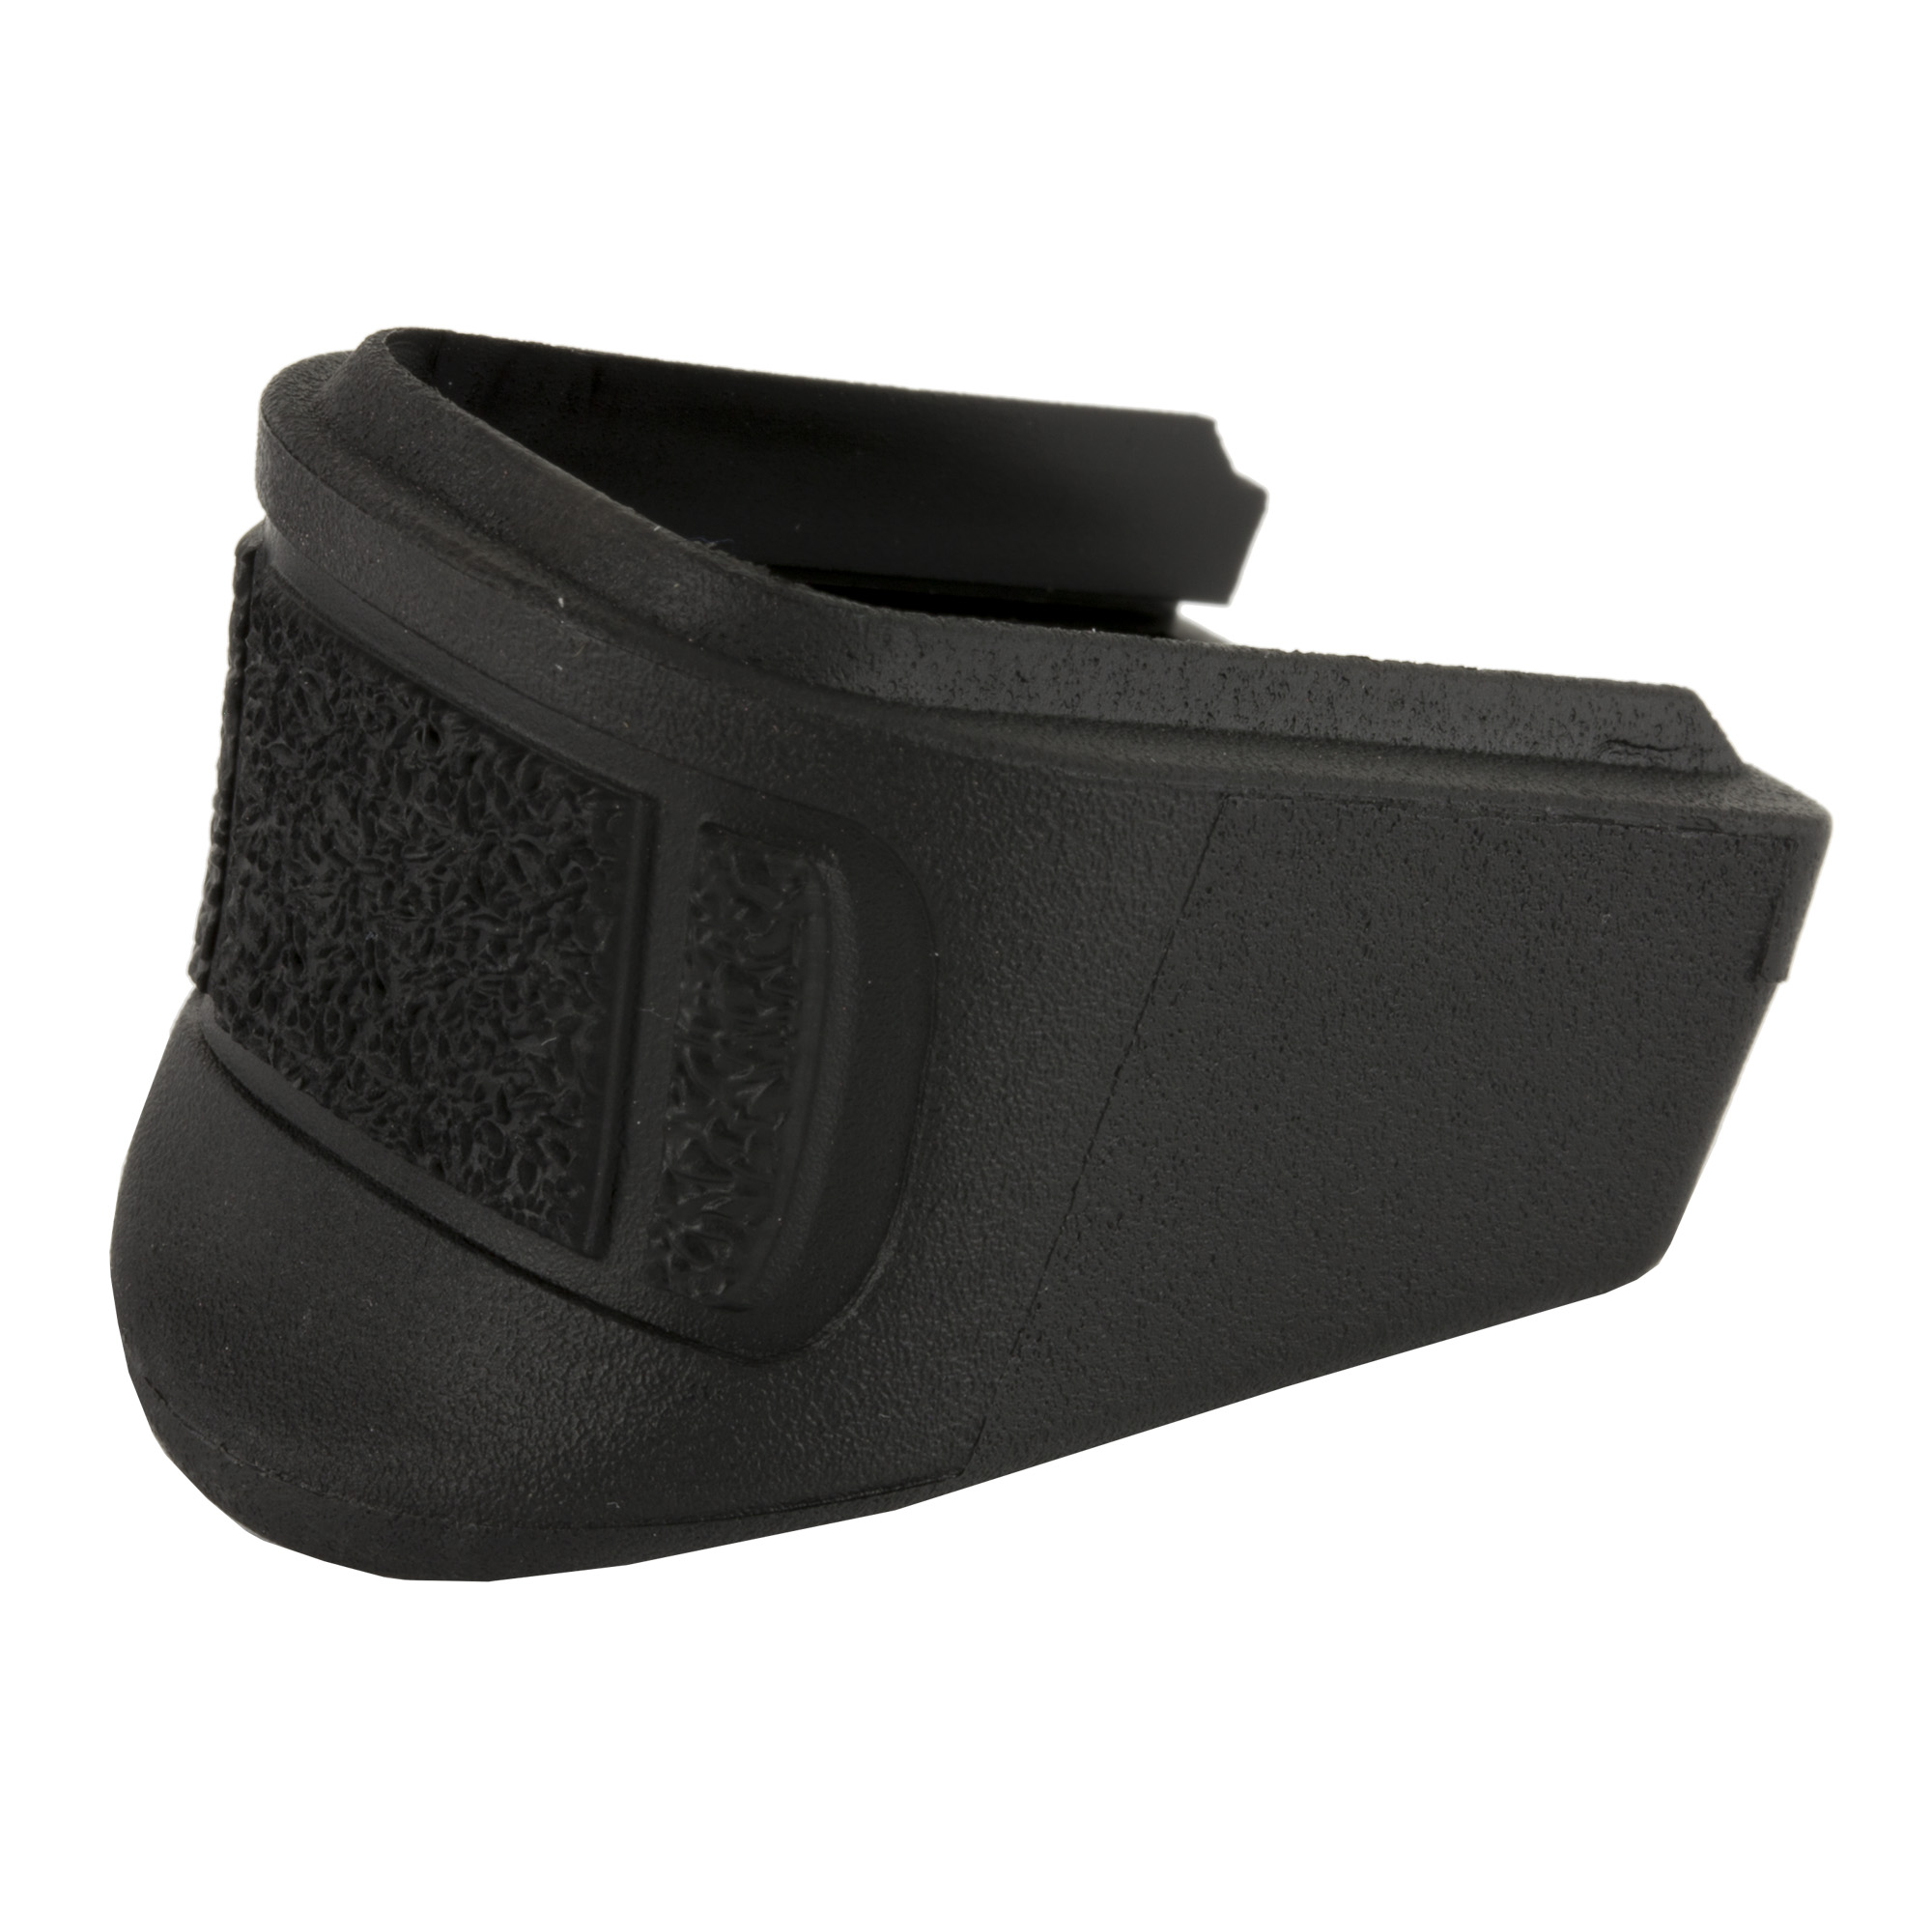 """These units replace the magazine floor plate and internal floor plate on the 9mm (13 round only) and 40 S&W. They will add approximately 1"""" inch in length and additional capacity.(2 rounds to 9mm and 1 round to the 40 cal.)"""